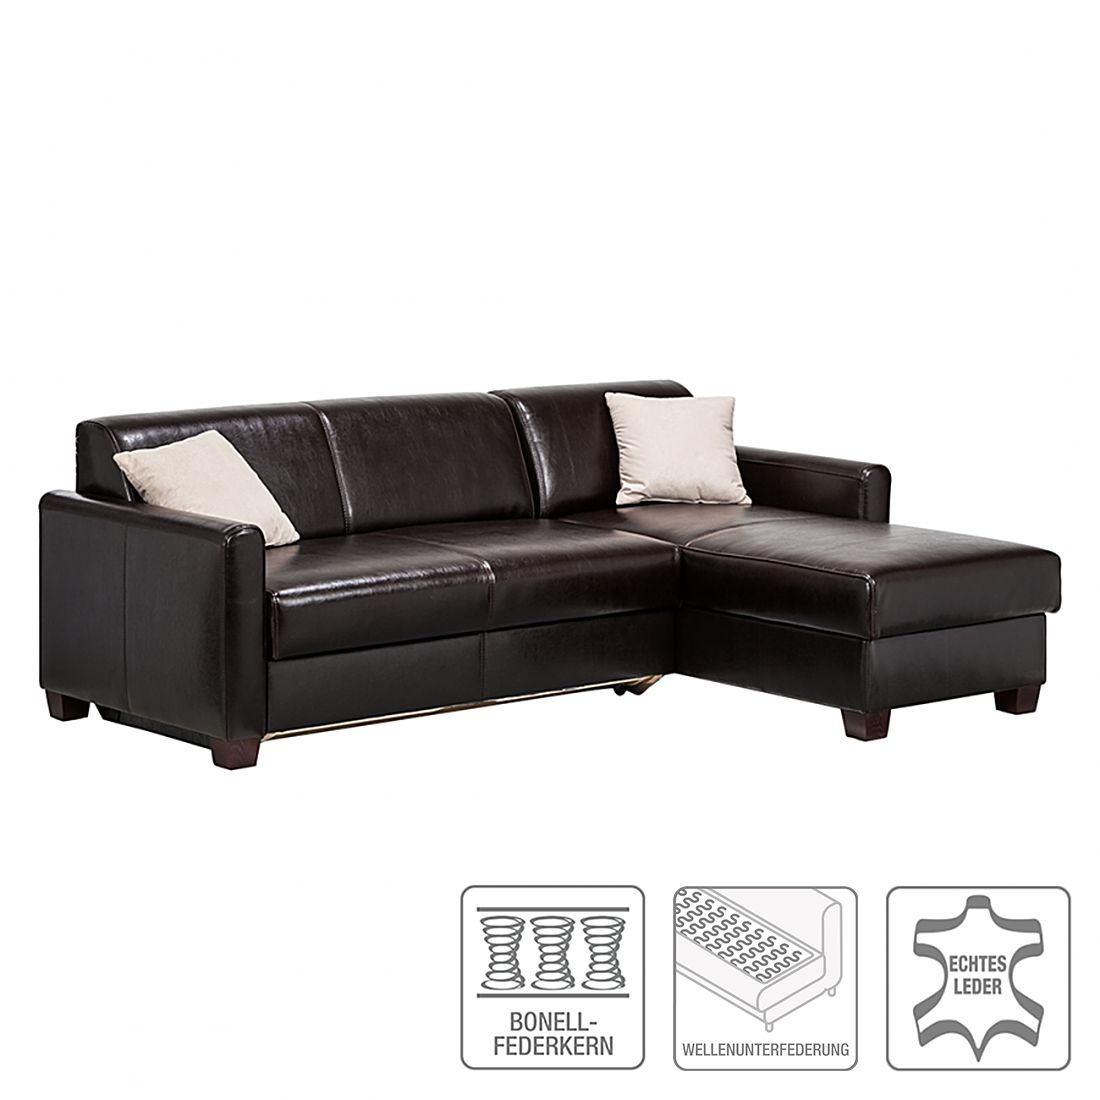 ecksofa mit schlaffunktion welche modelle sind. Black Bedroom Furniture Sets. Home Design Ideas